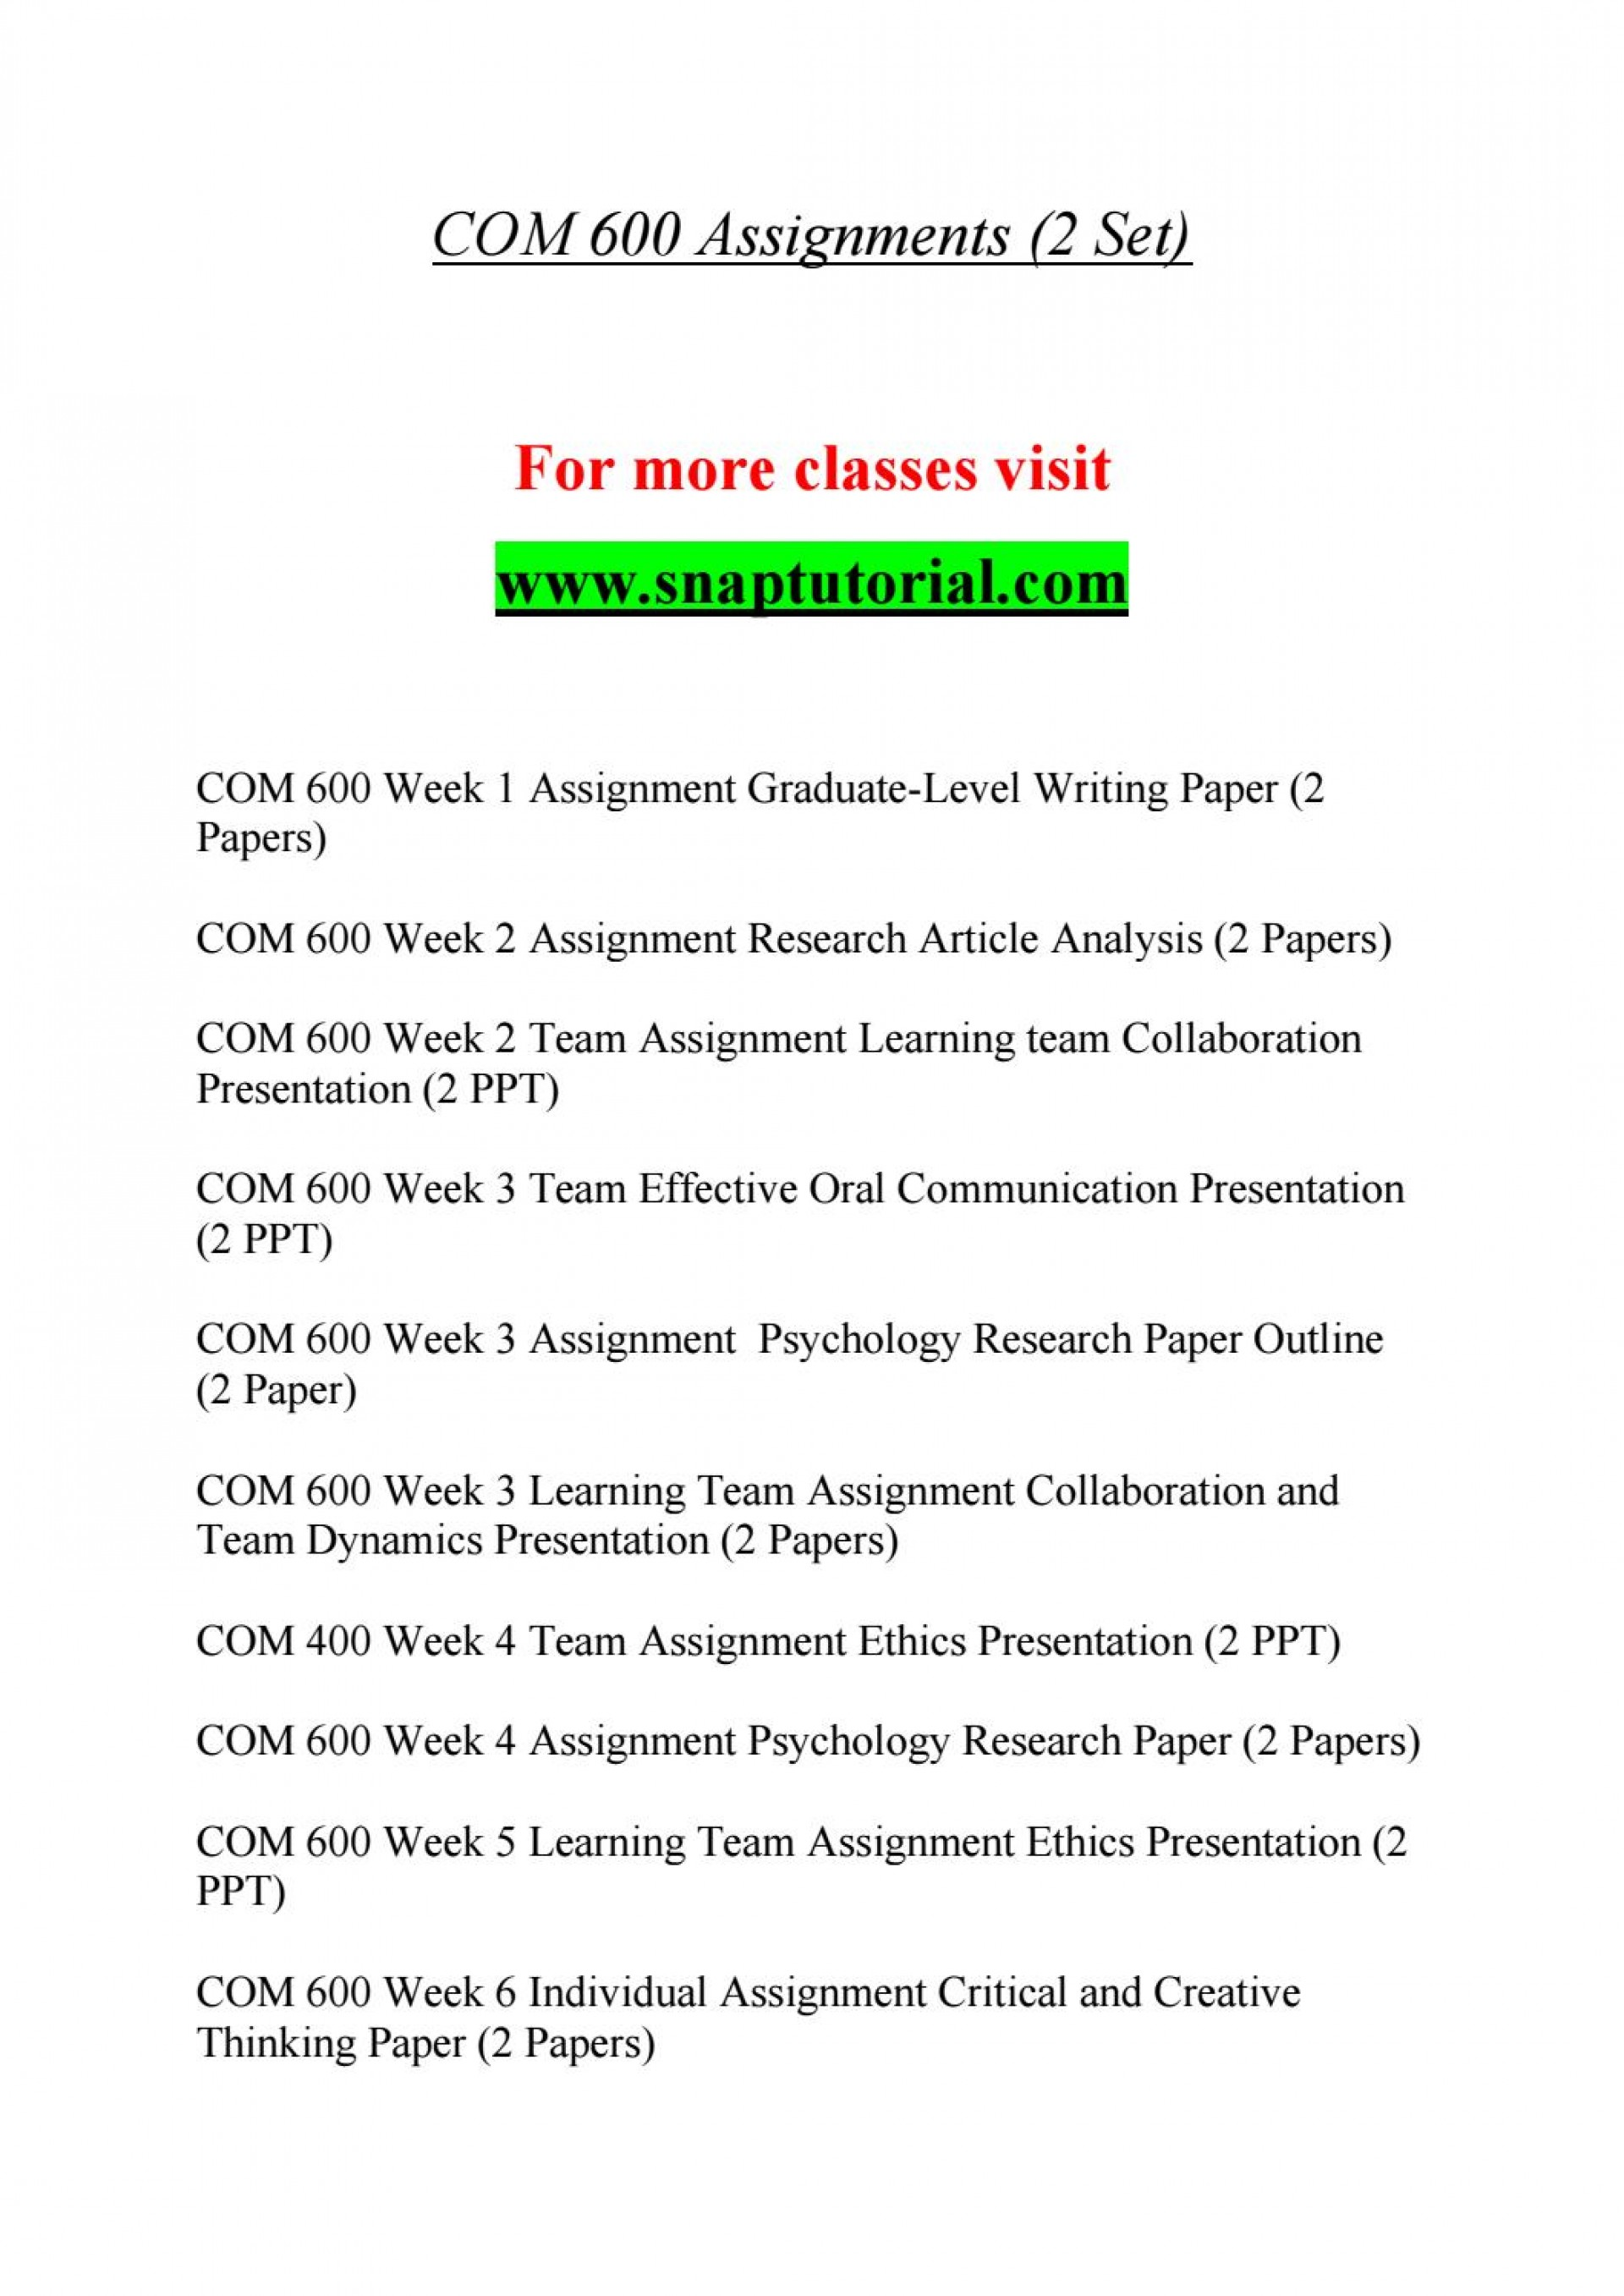 010 Research Paper Psychology Outline Com Page 1 Striking 600 Com/600 1920